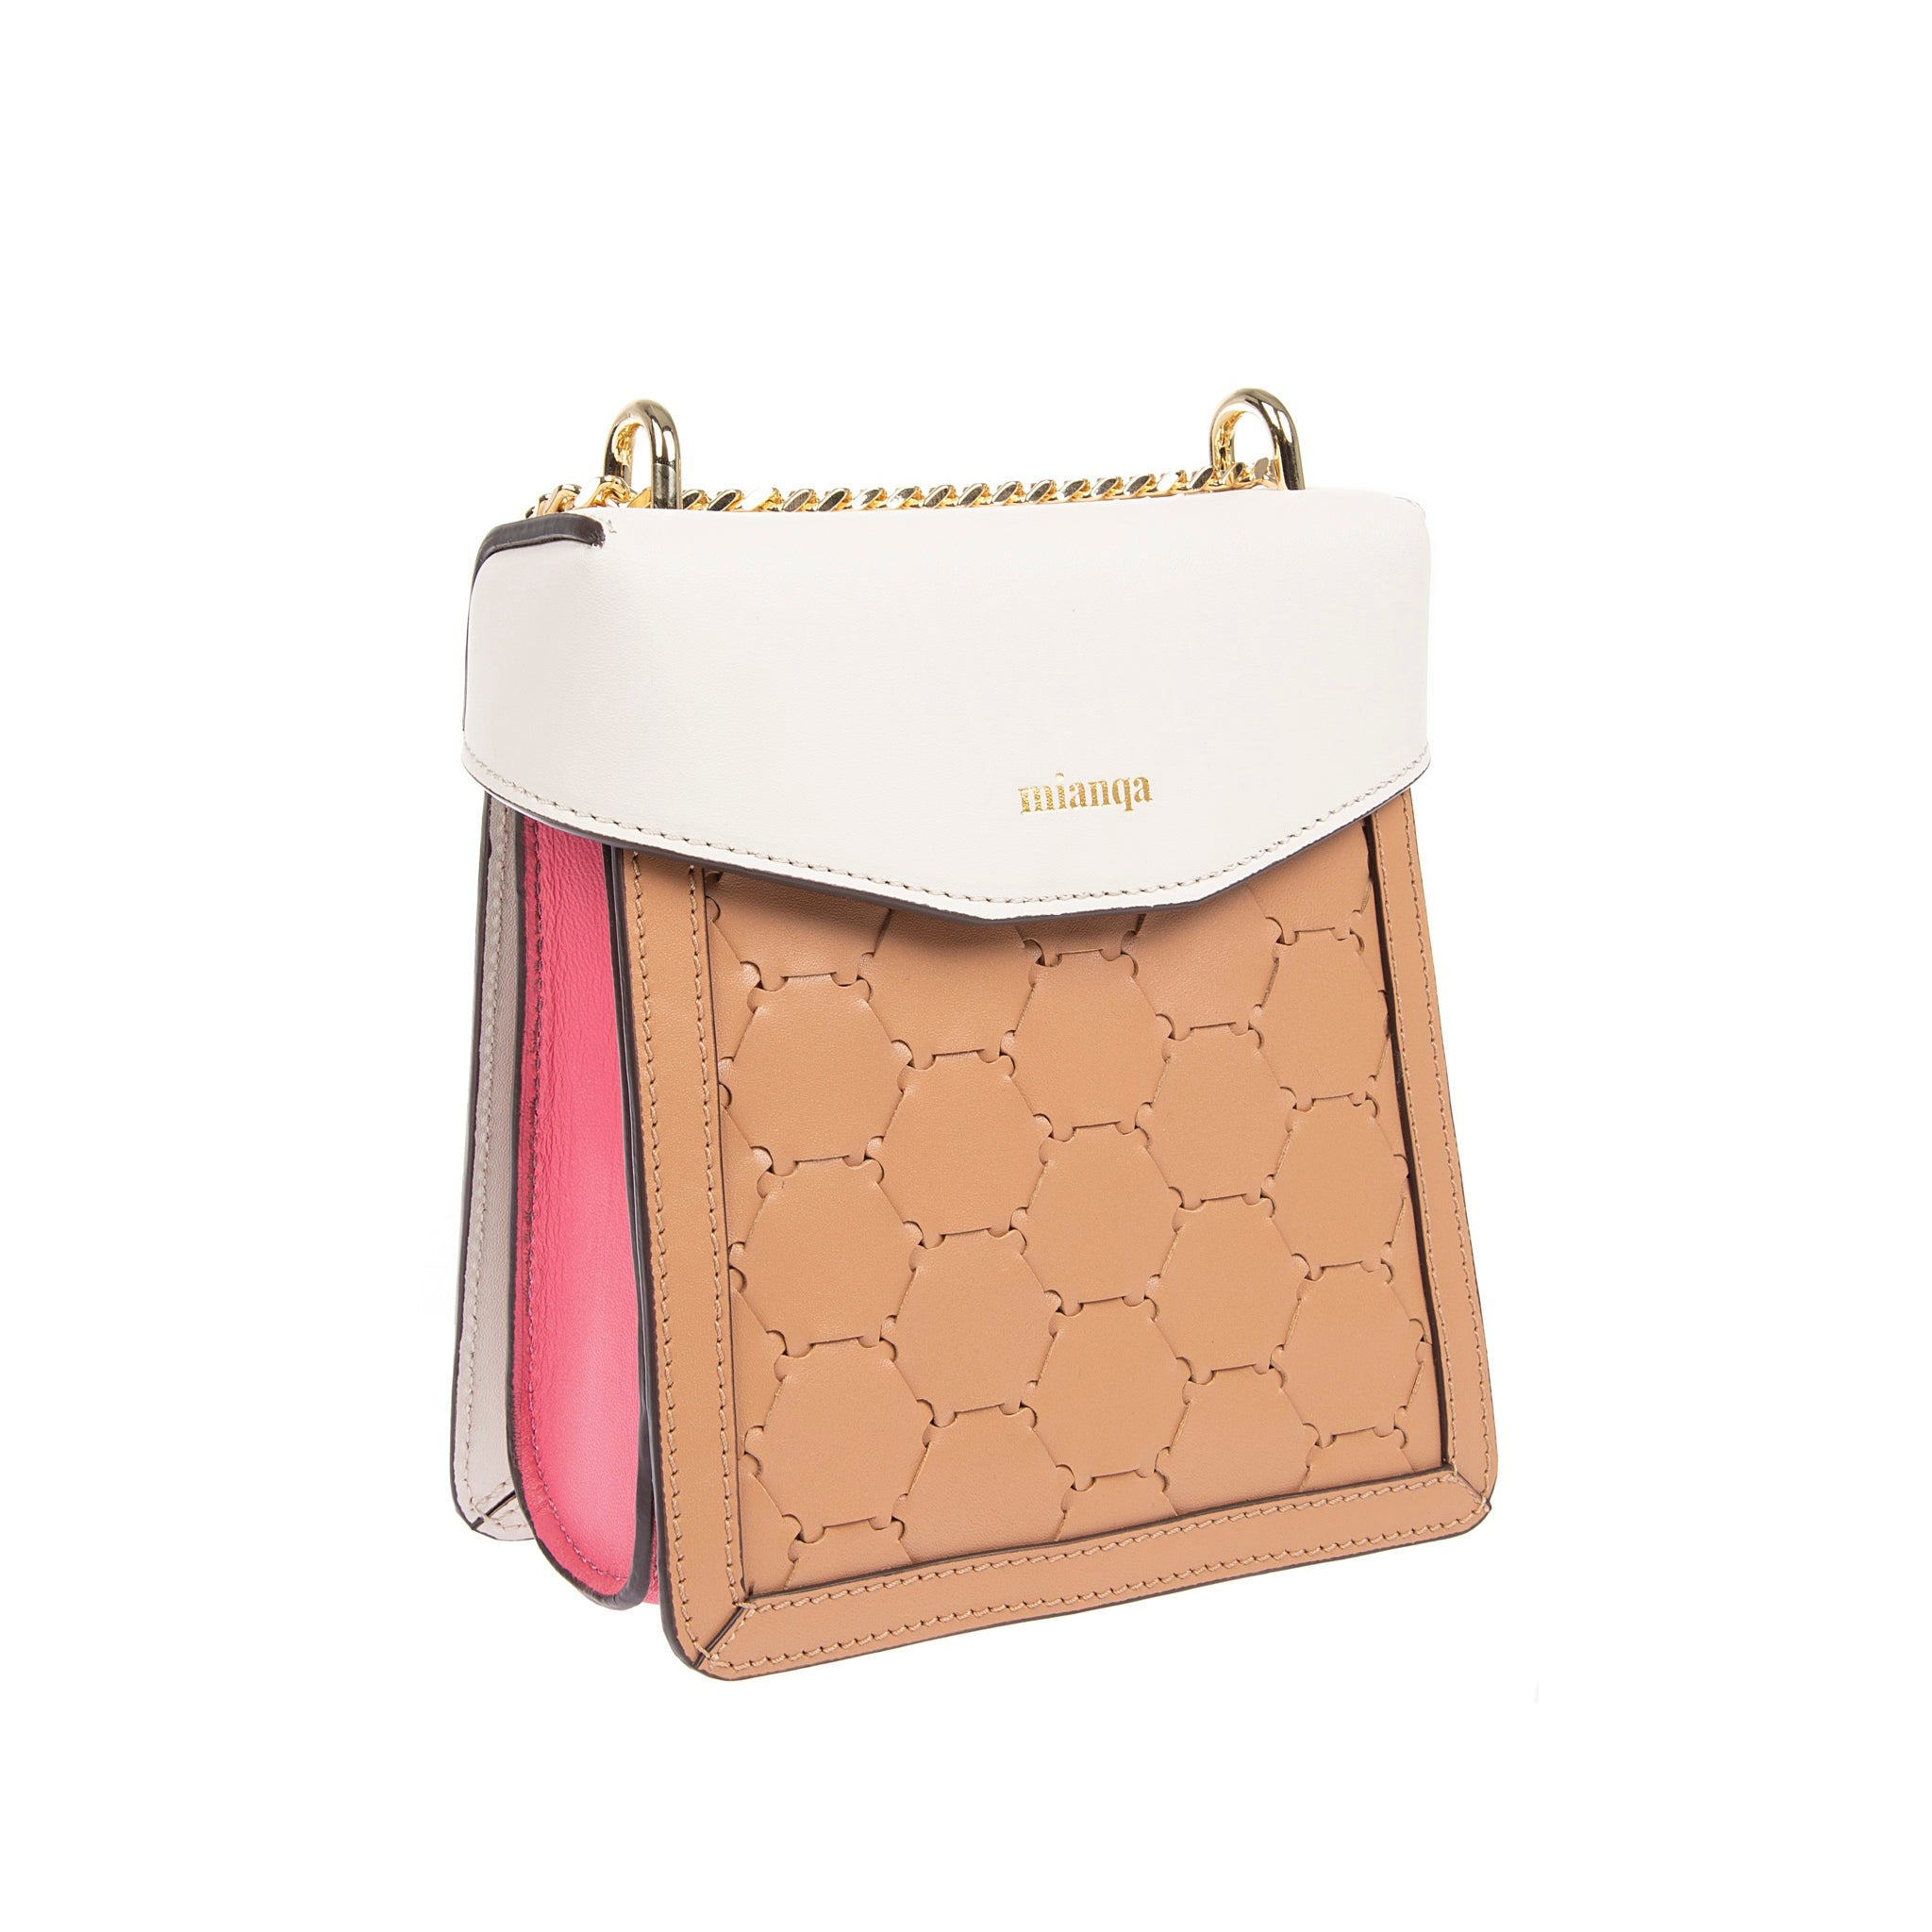 F U R E Y A | Leather Crossbody Bag Camel/ White